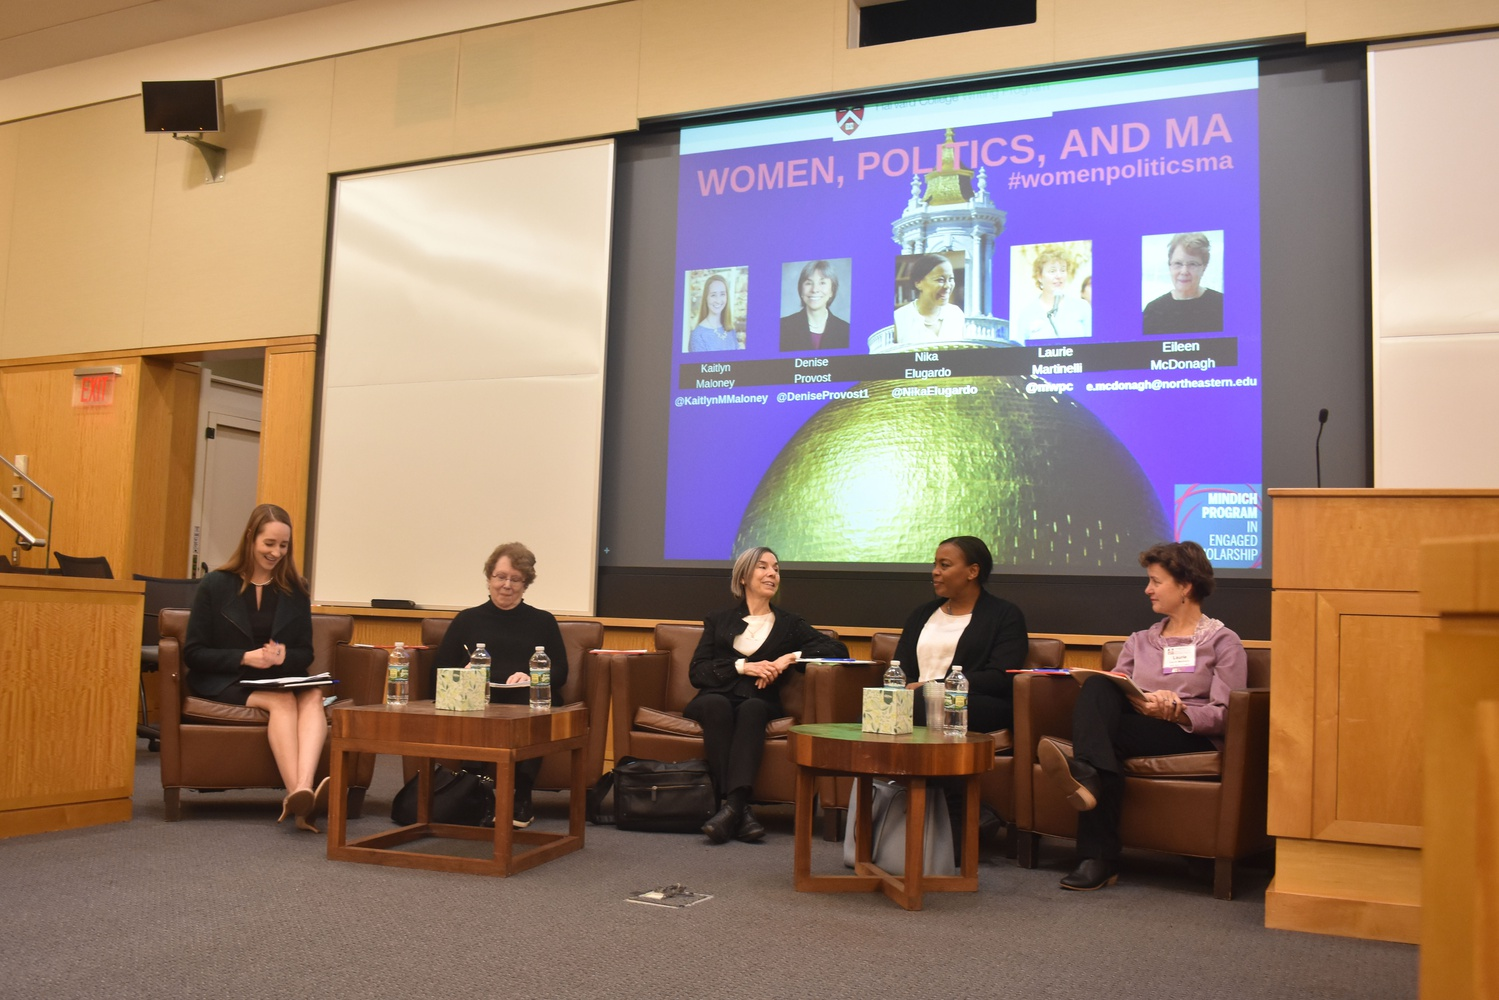 Five panelists discussed ways to increase female political representation in Massachusetts Wednesday afternoon in CGIS South.